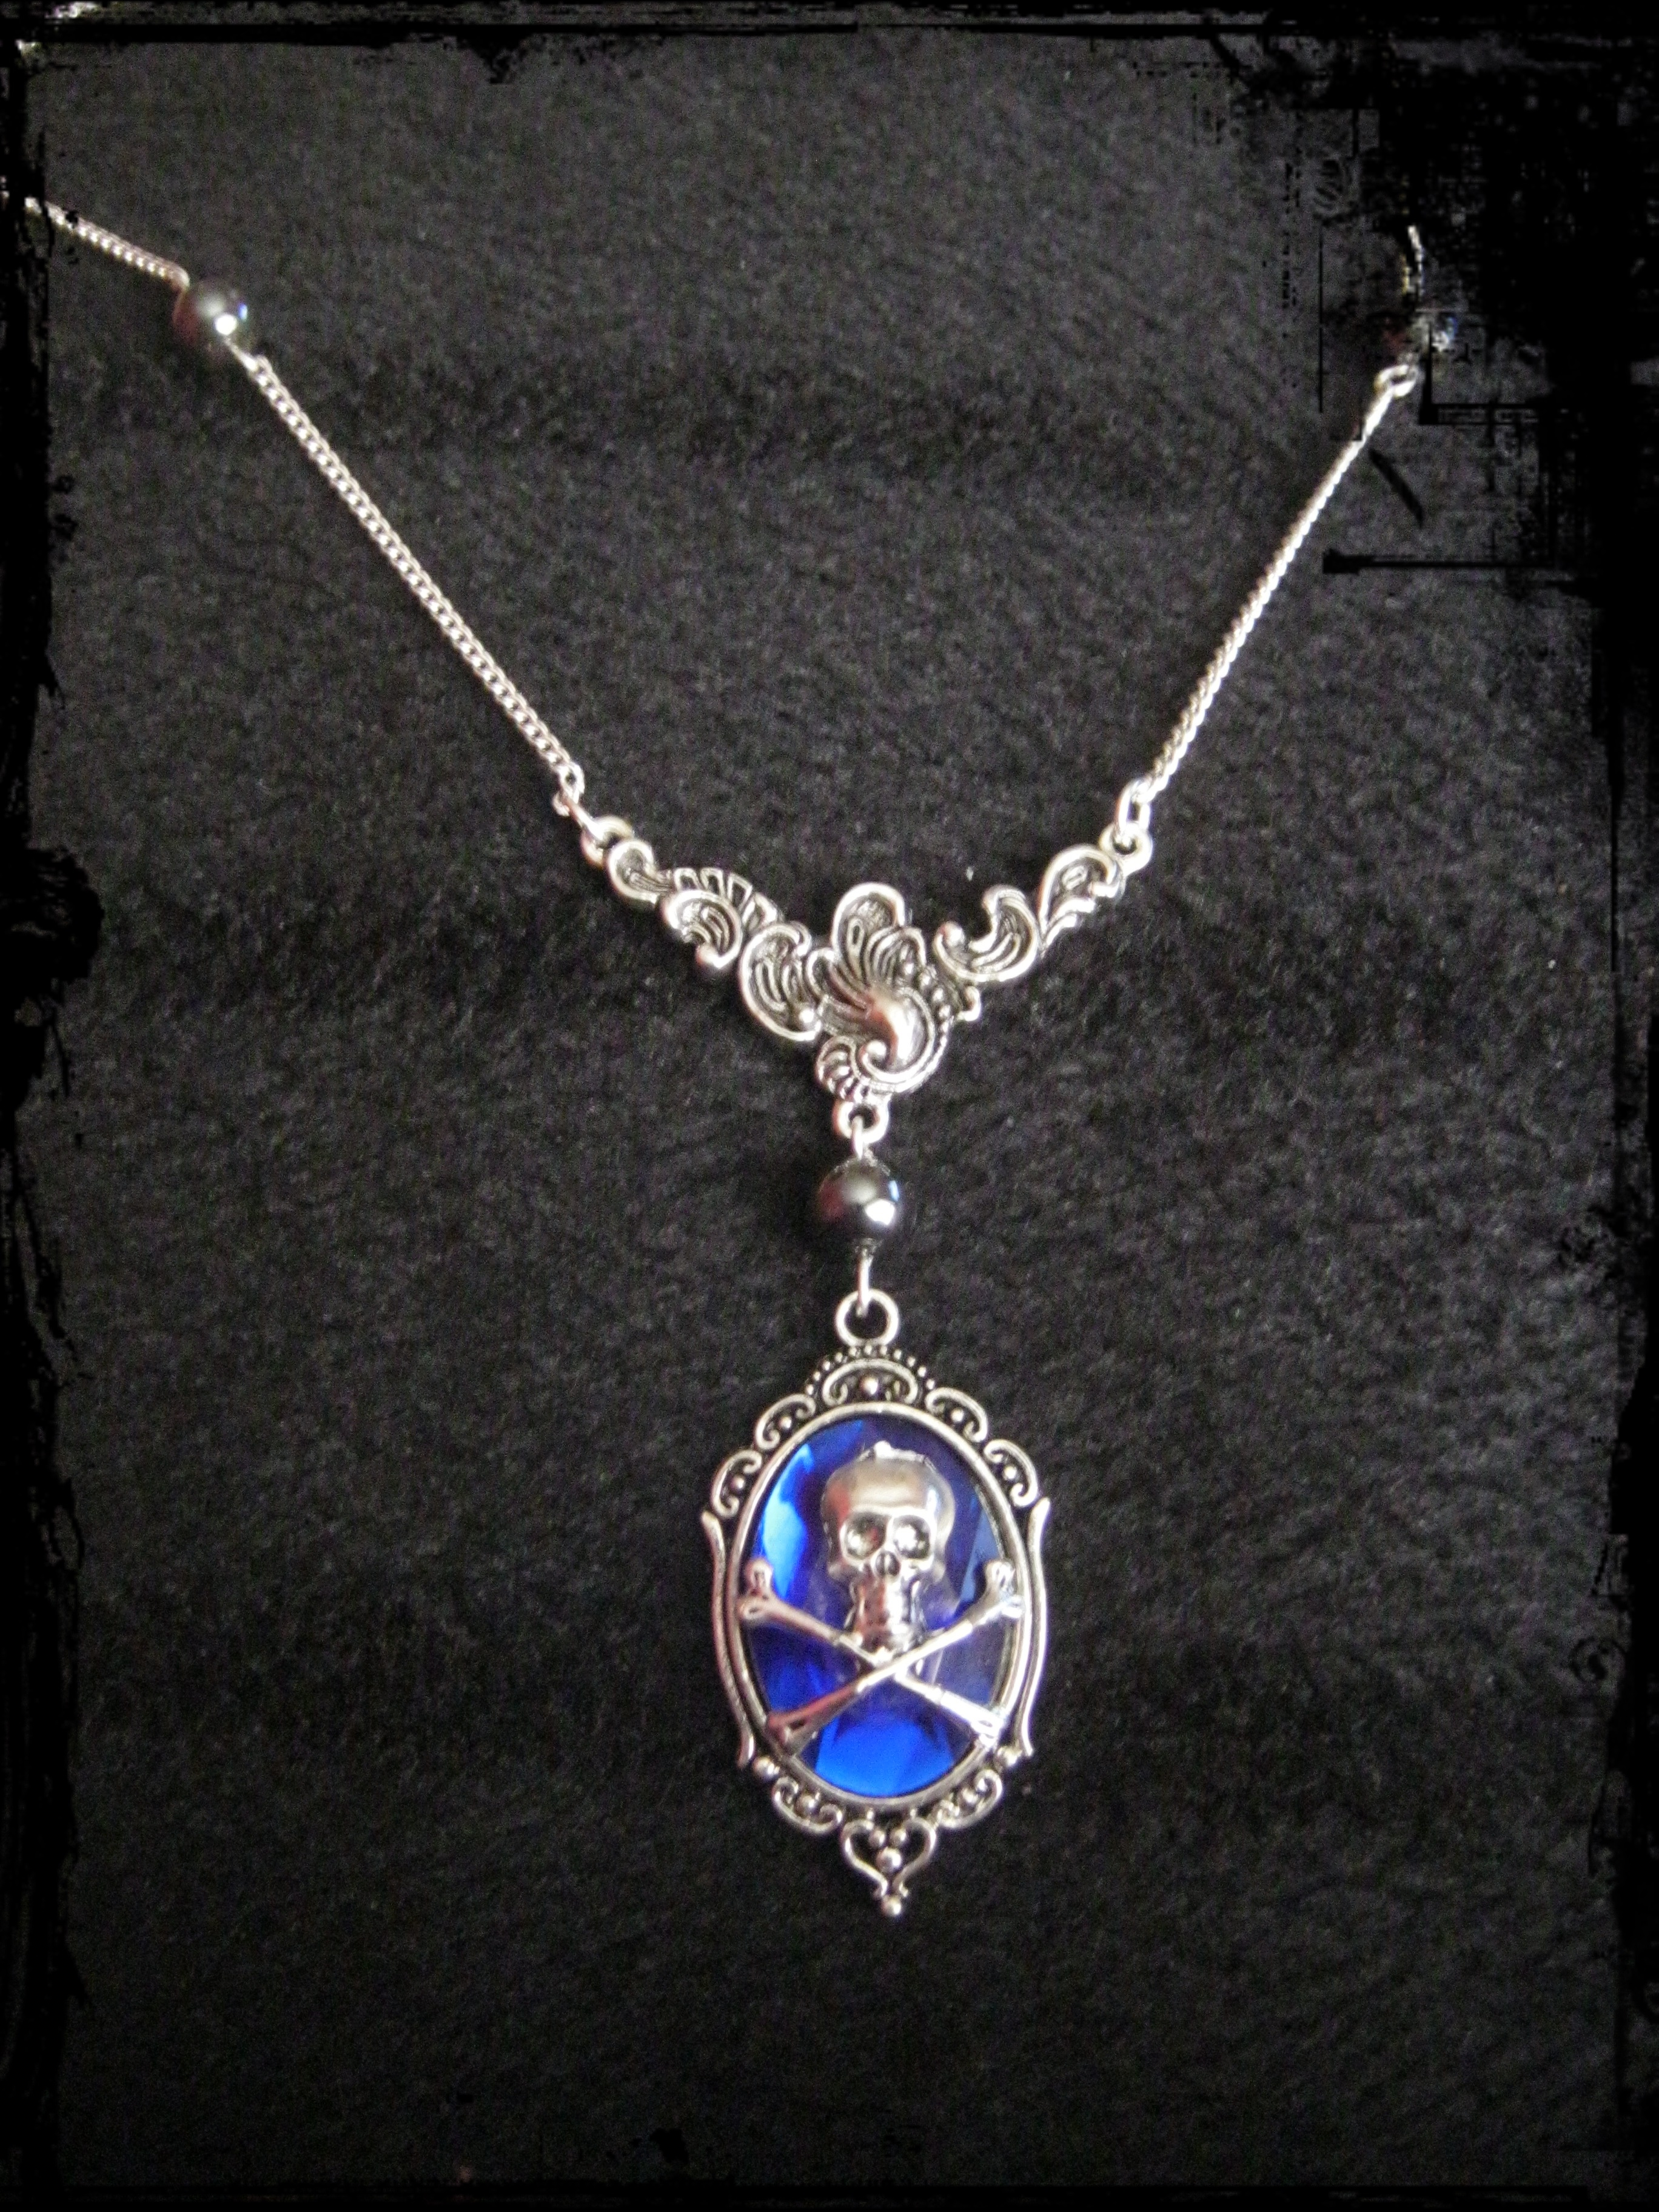 floral_necklace_blue_faceted_cabochon_skull_hematite_beads_necklaces_2.JPG